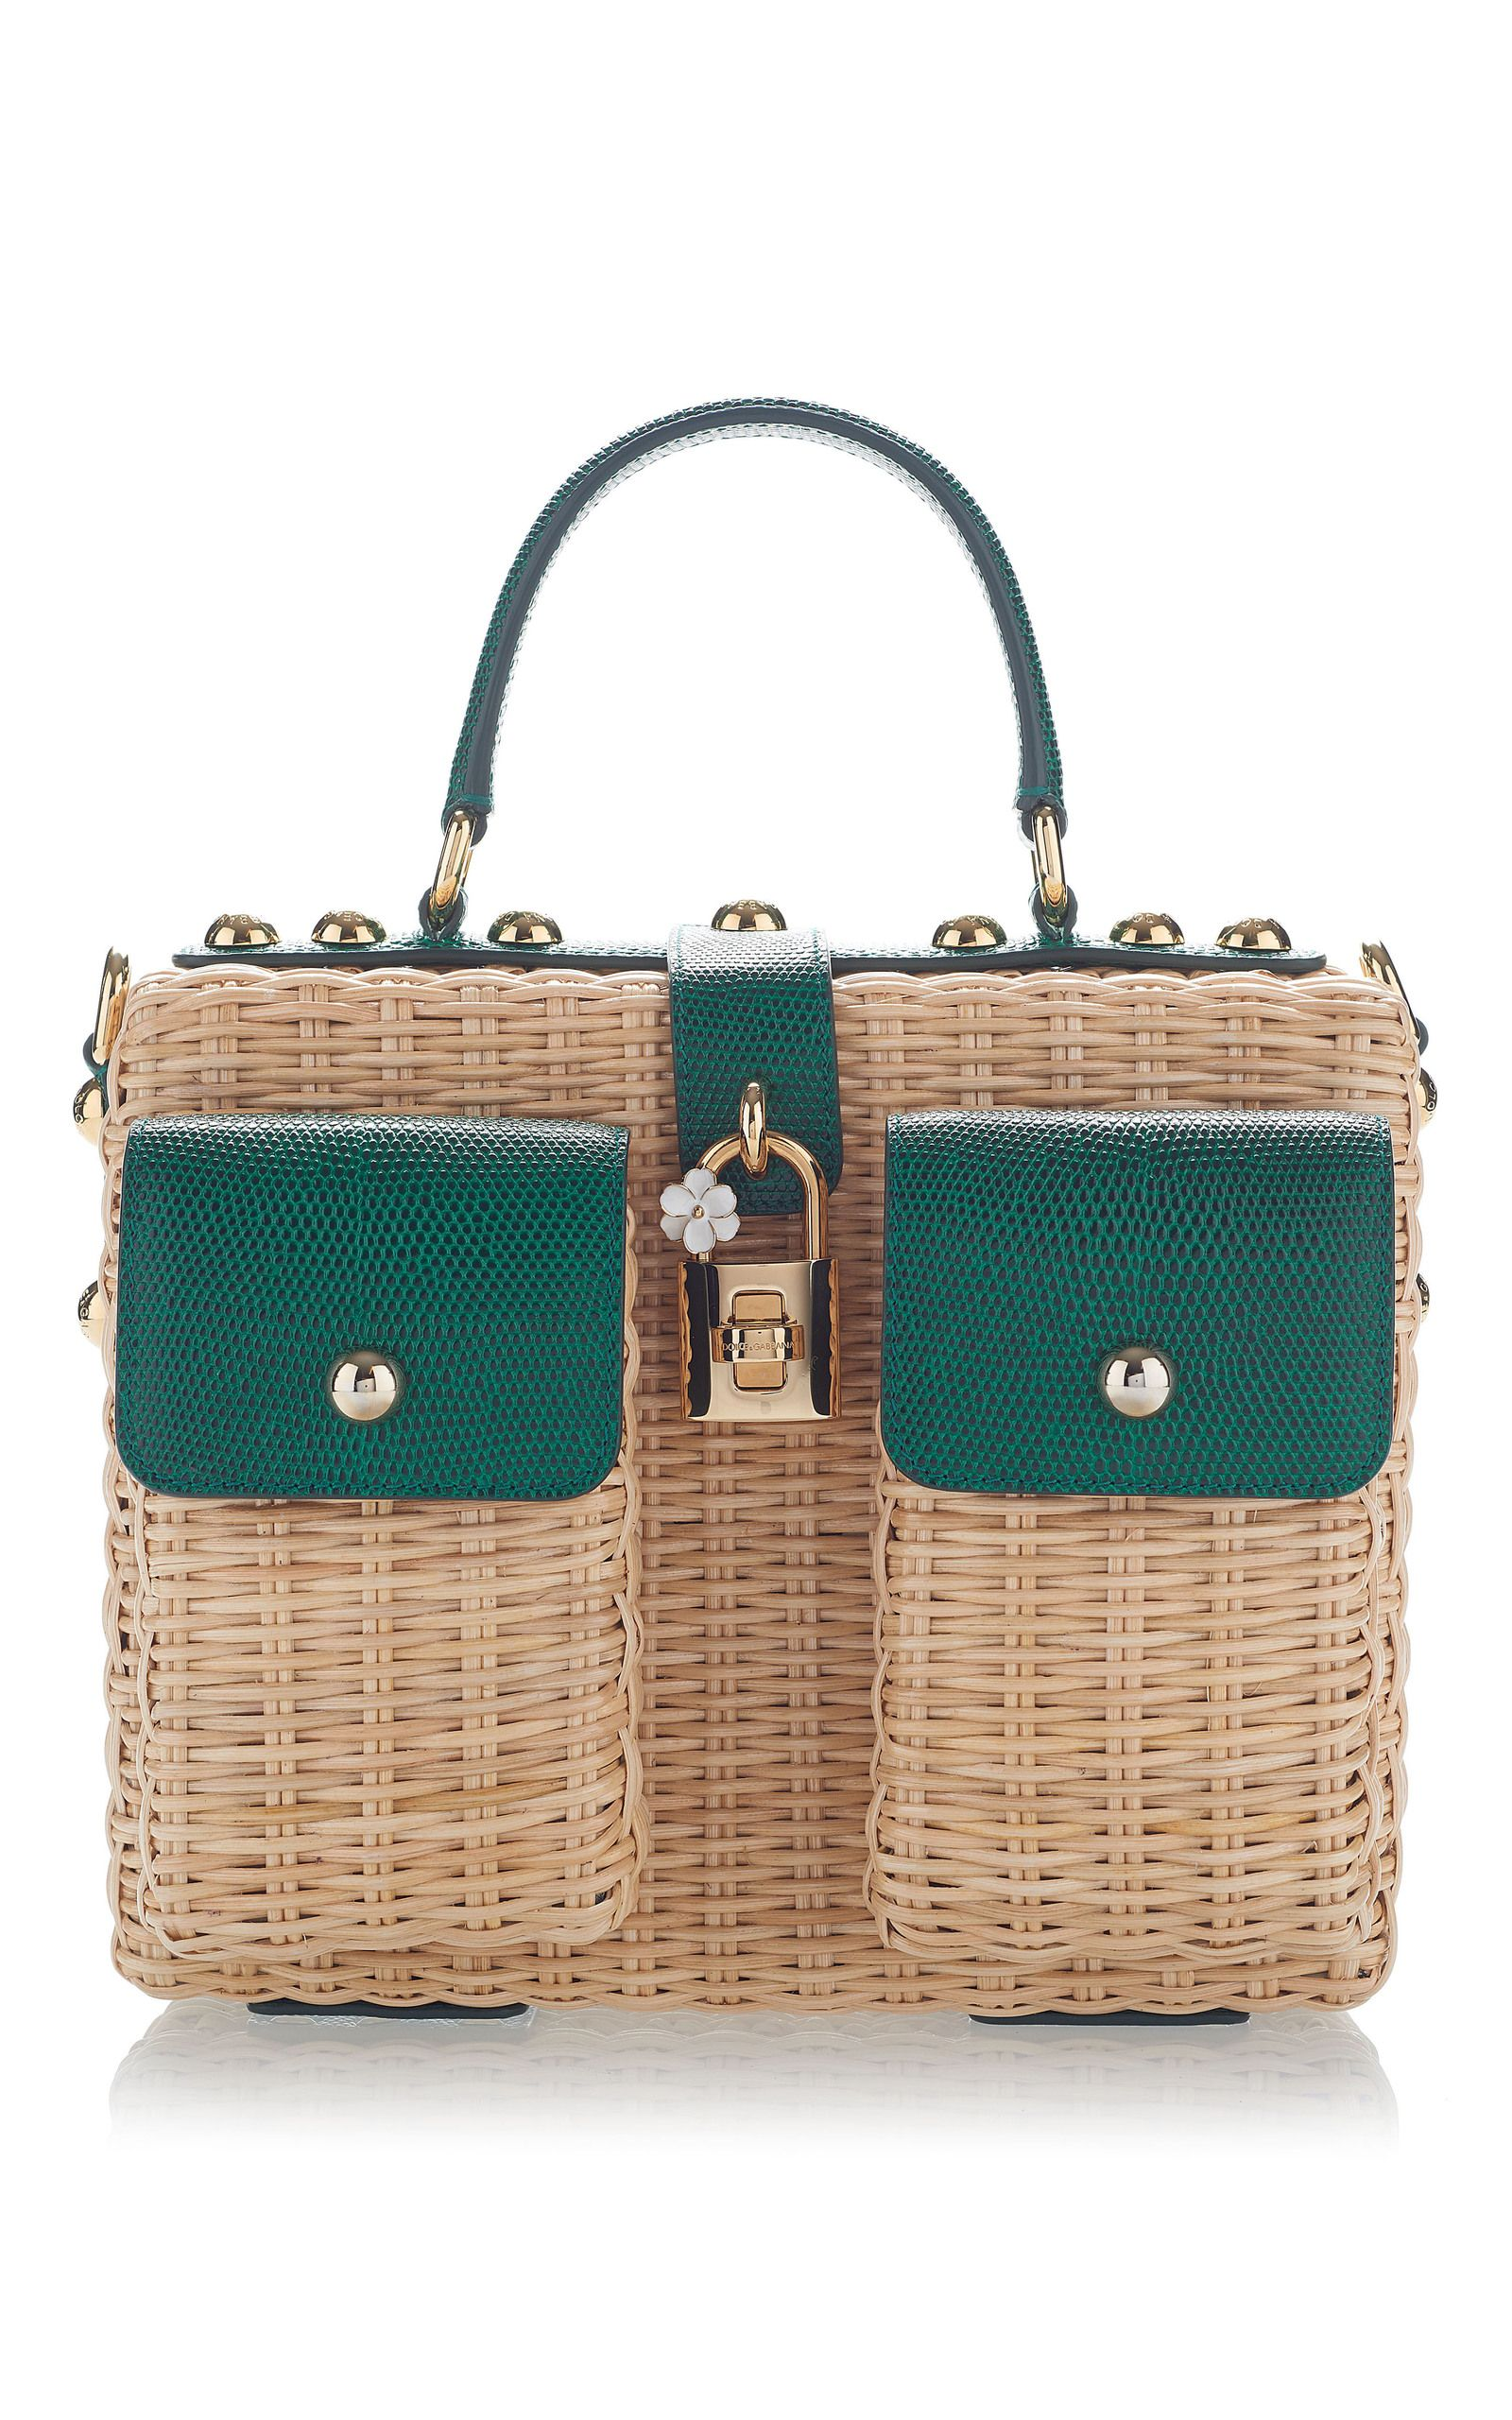 DOLCE   GABBANA Embellished Leather-Trimmed Rattan Tote.  dolcegabbana  bags   shoulder bags  hand bags  leather  tote   b750ef39285b6